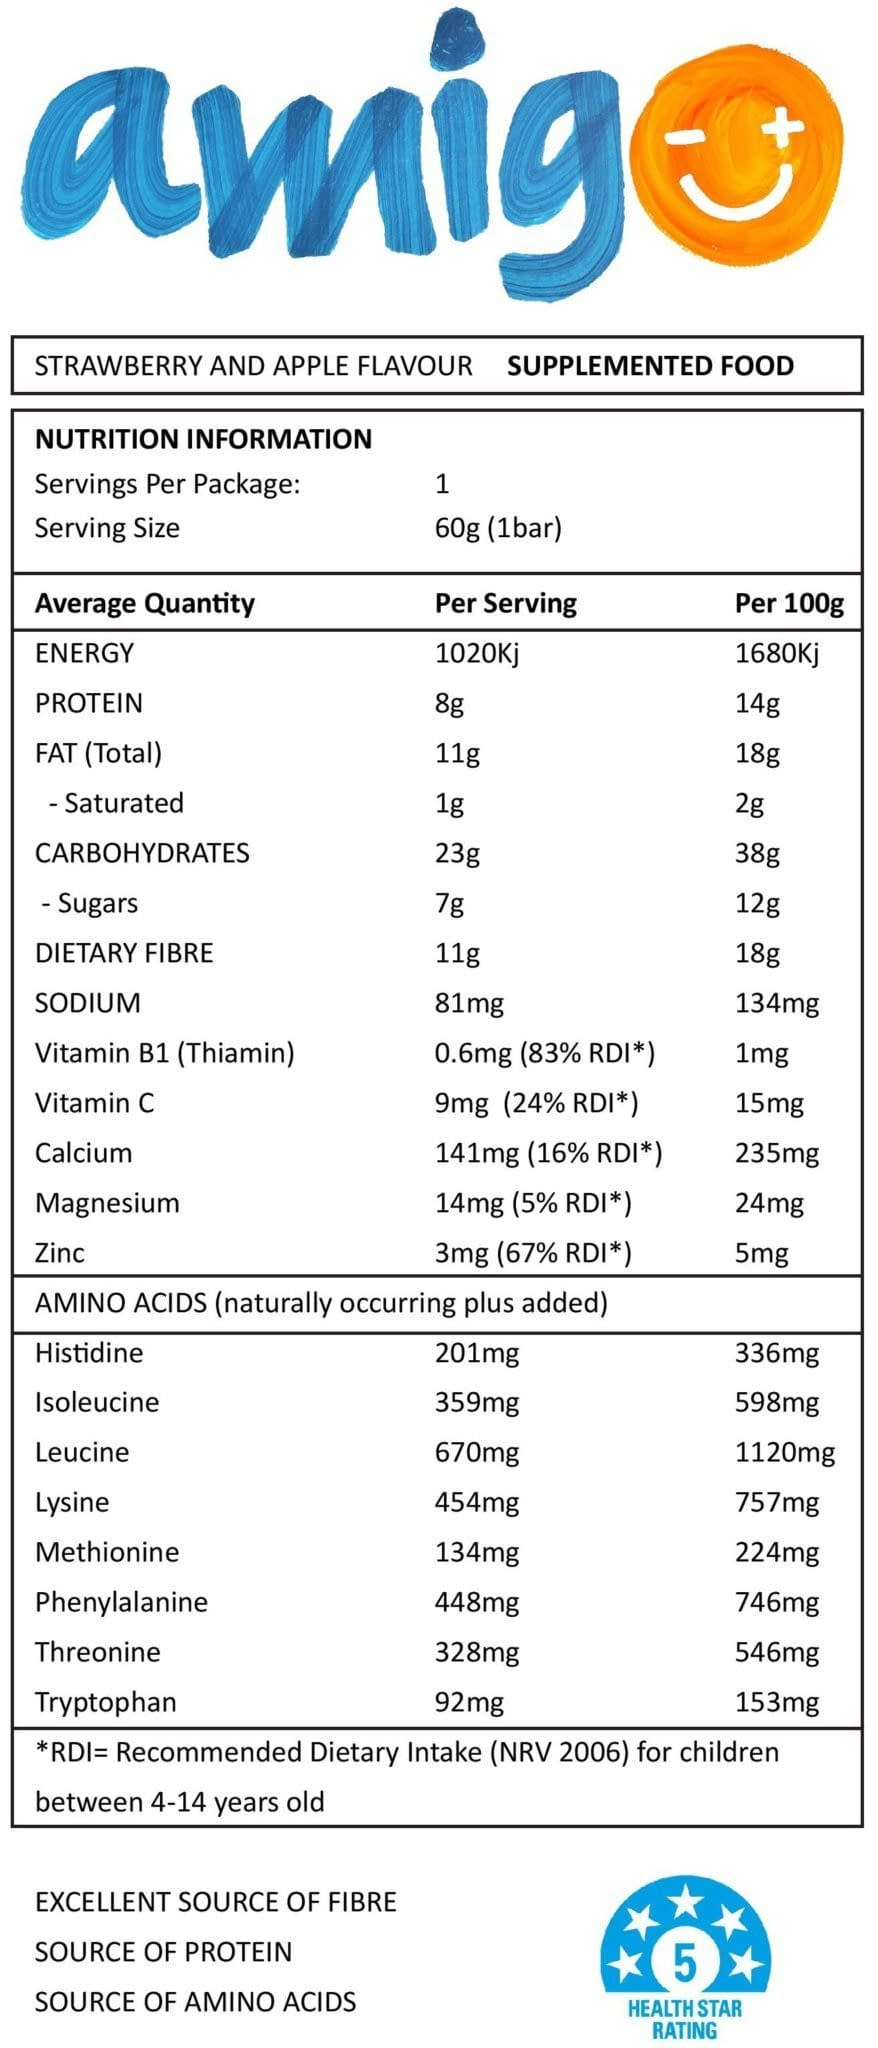 product-specifications-nutritional-information-panel-trimmed